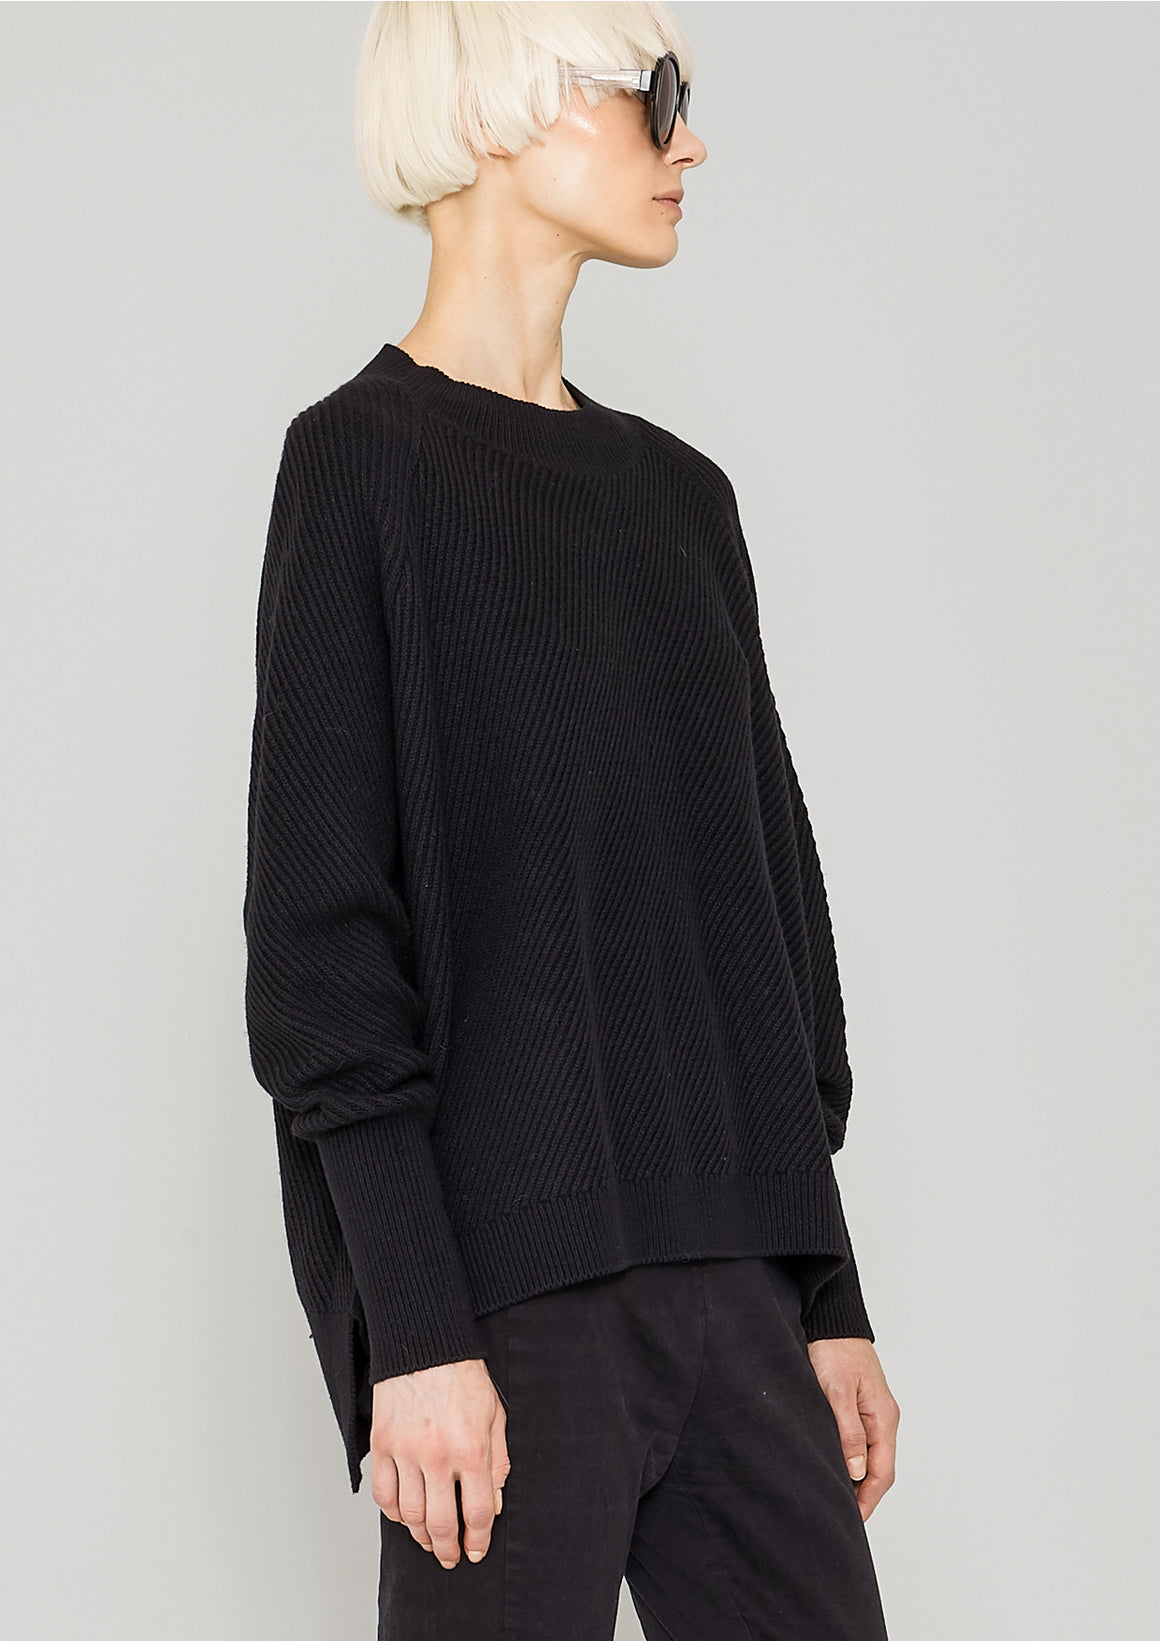 SWEATER - KNIT BIAS RIB black